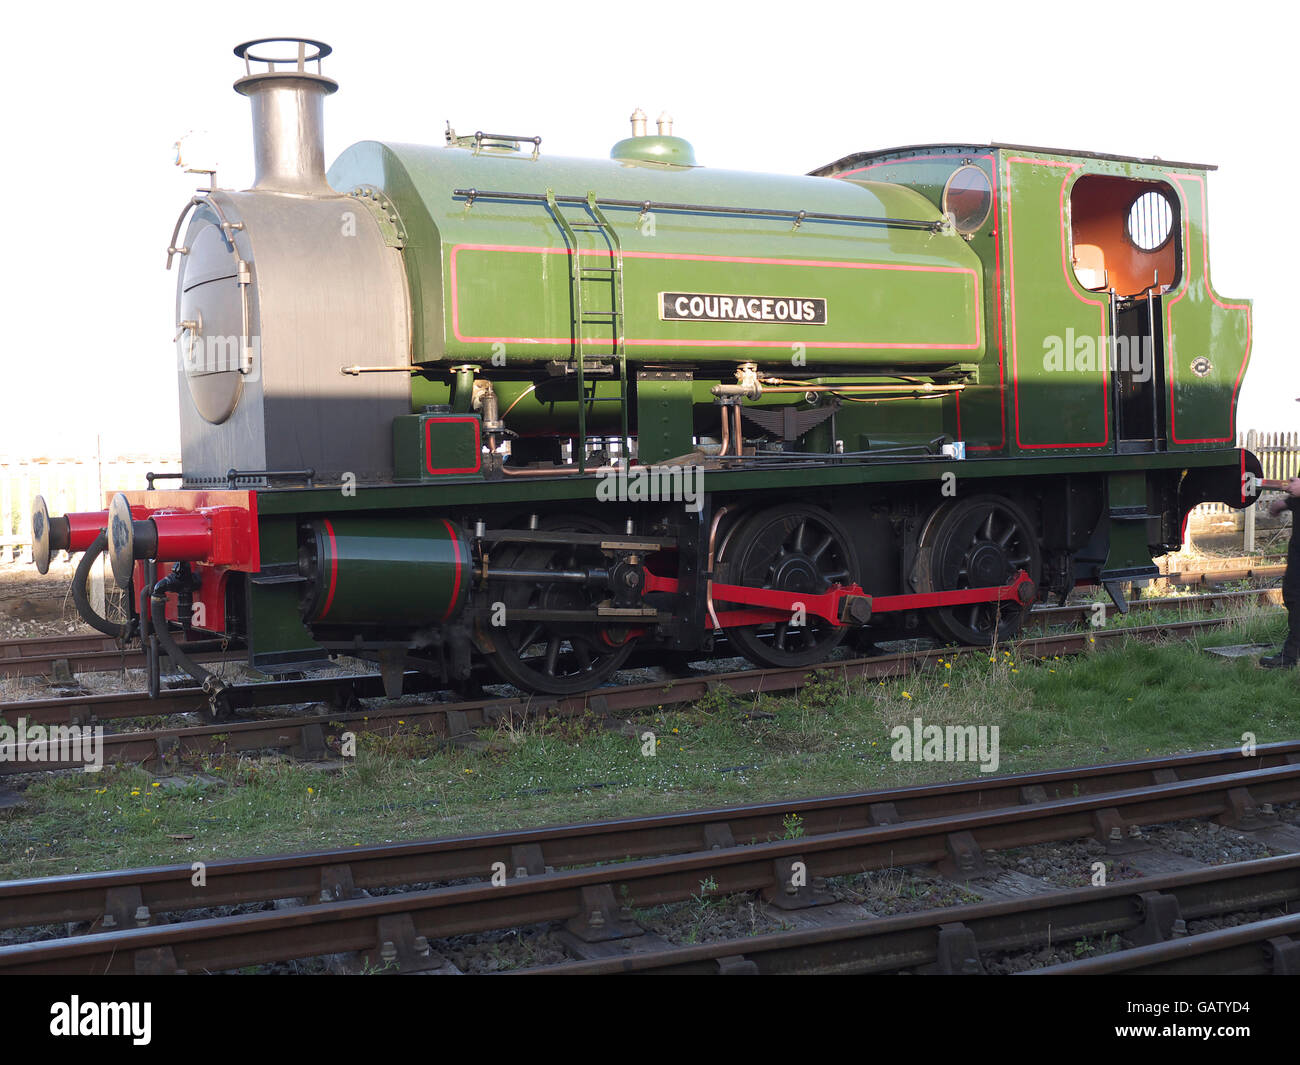 Courageous a 0-6-0 Bagnall steam  locomotive number 2680 on the Lincolnshire Wolds Railway Ludborough Lincolnshire - Stock Image